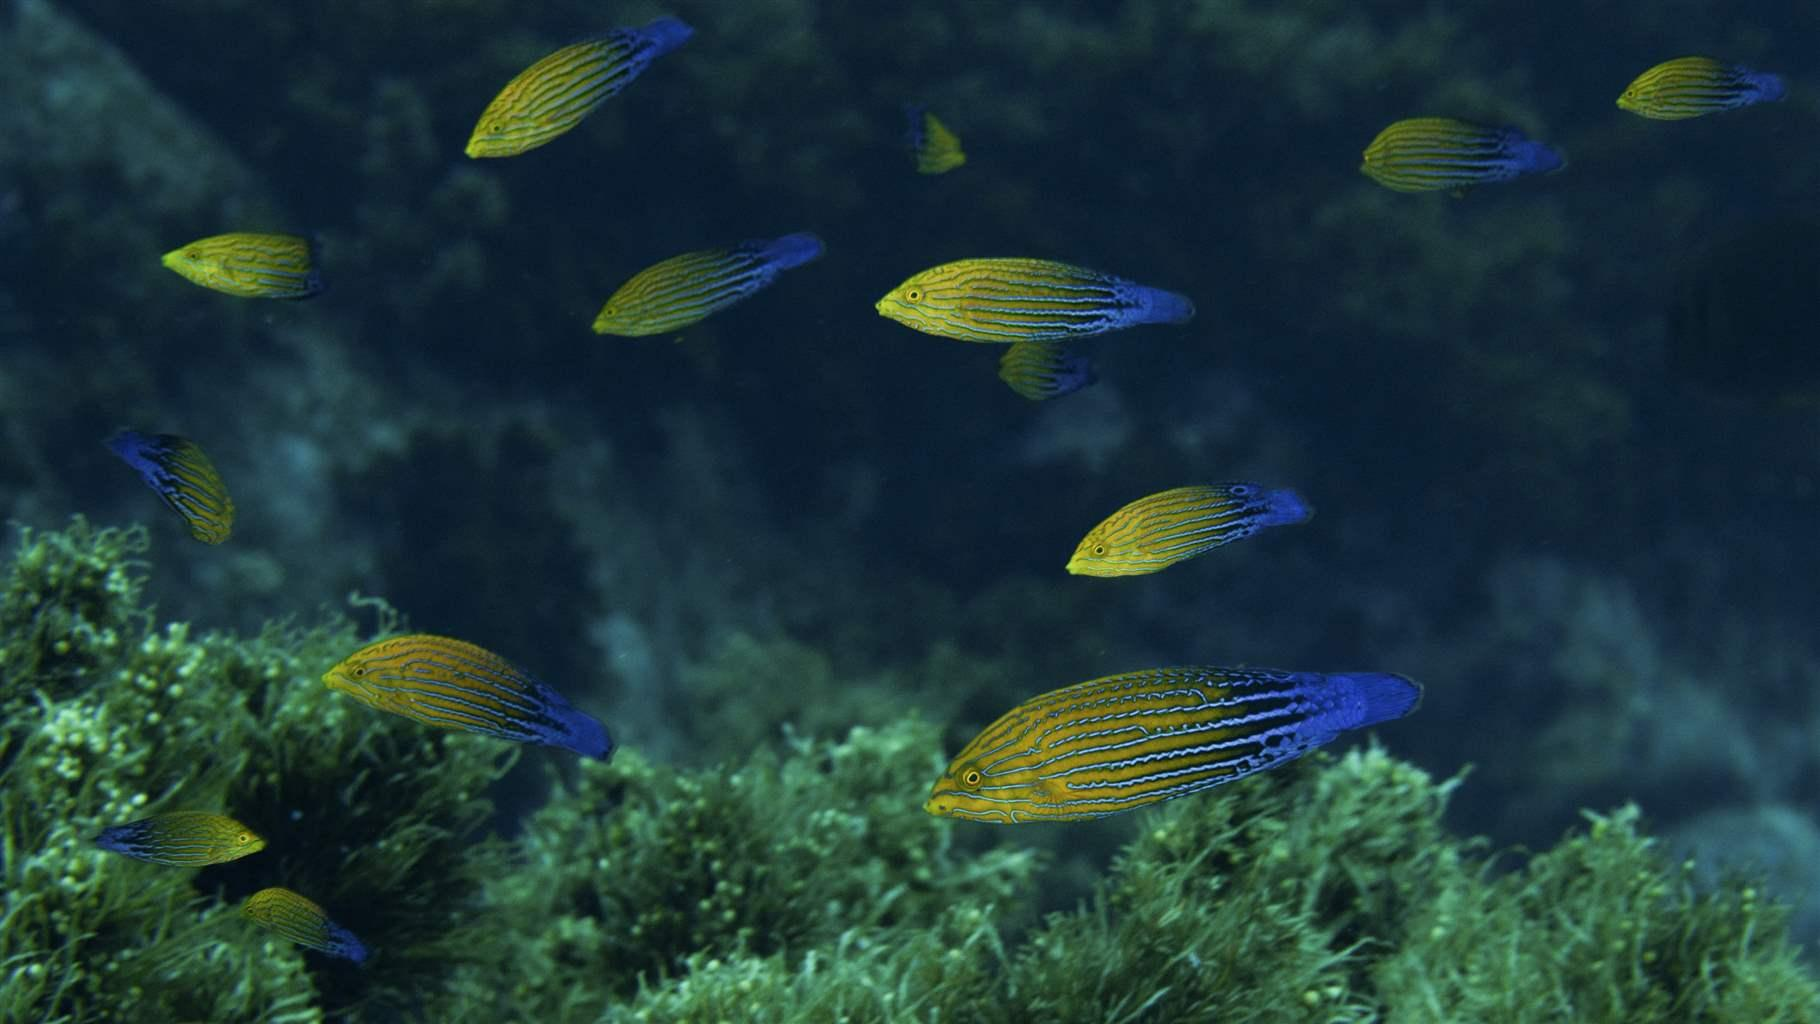 Blue striped tamarin wrasse